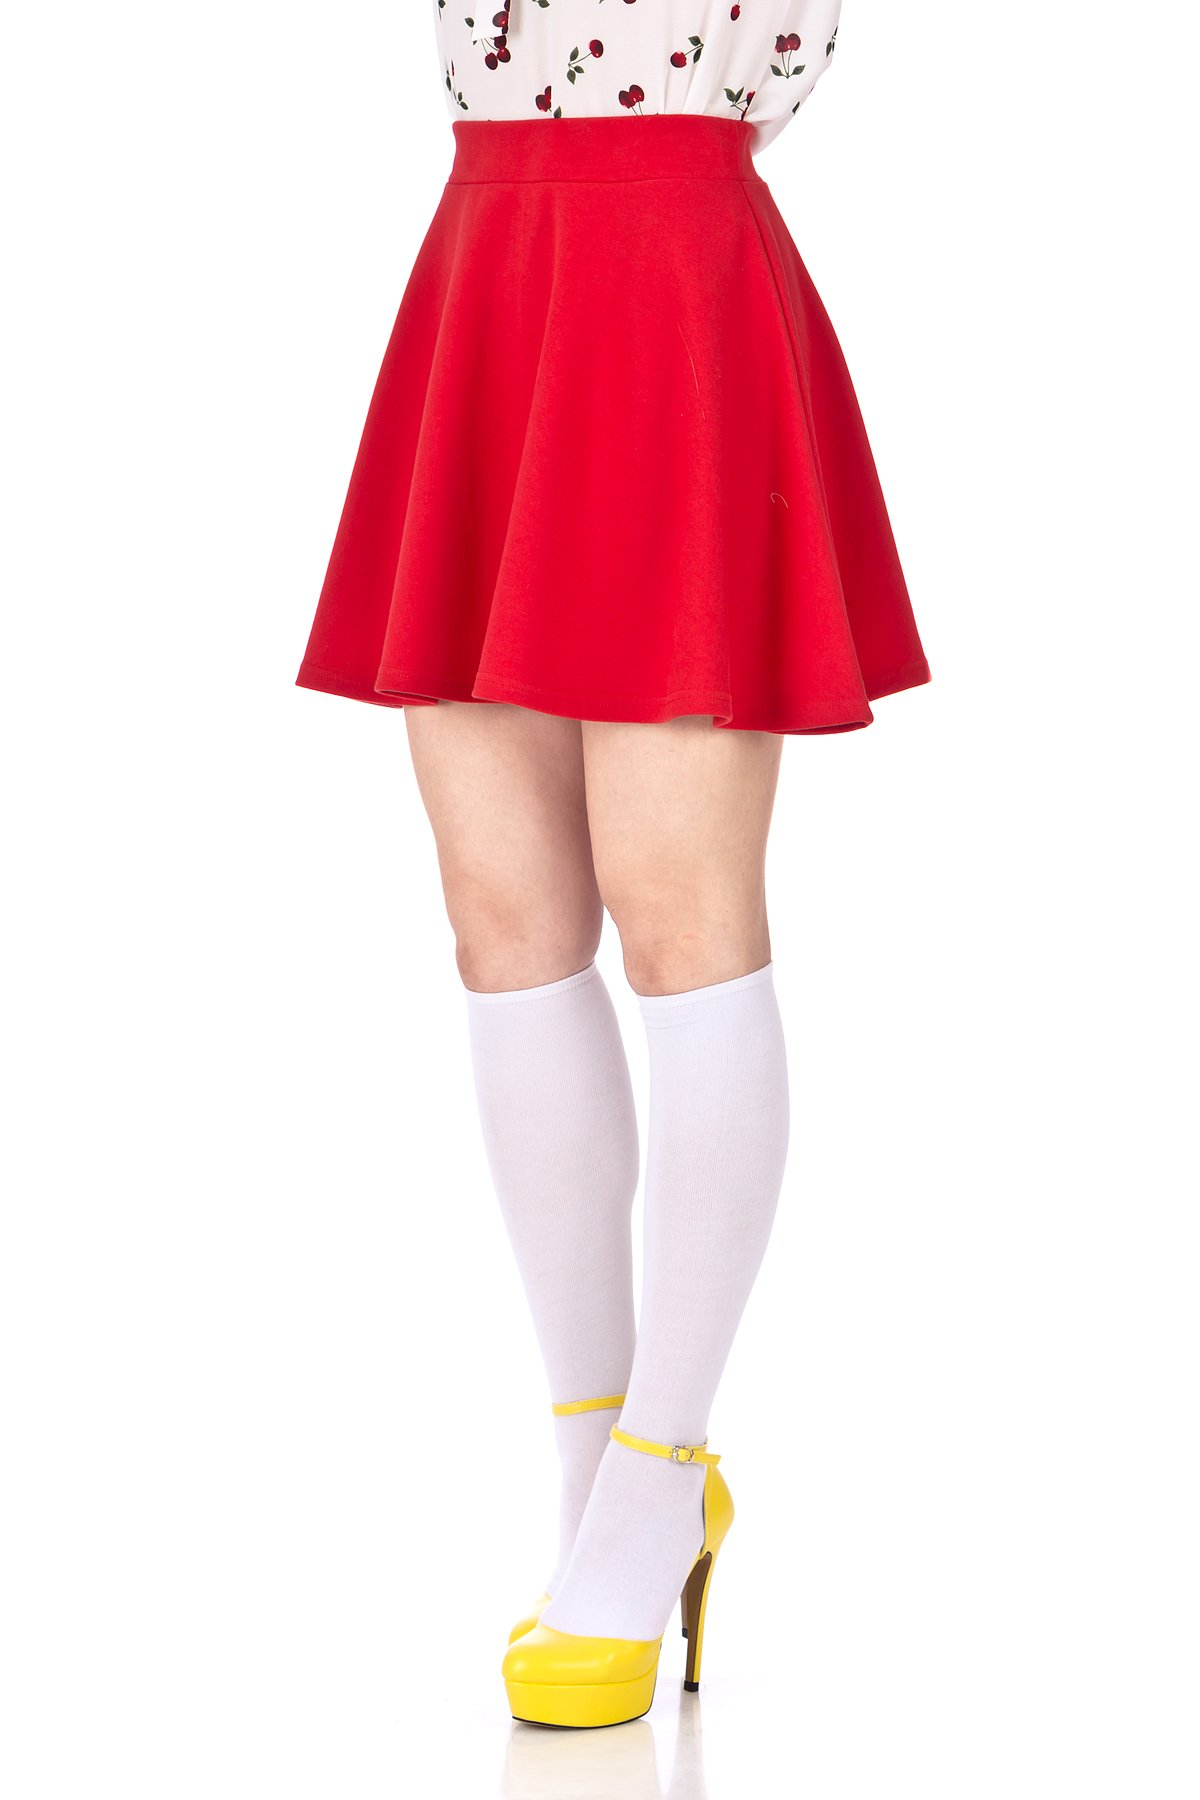 Basic Solid Stretchy Cotton High Waist line Flared Skater Mini Skirt Red 06